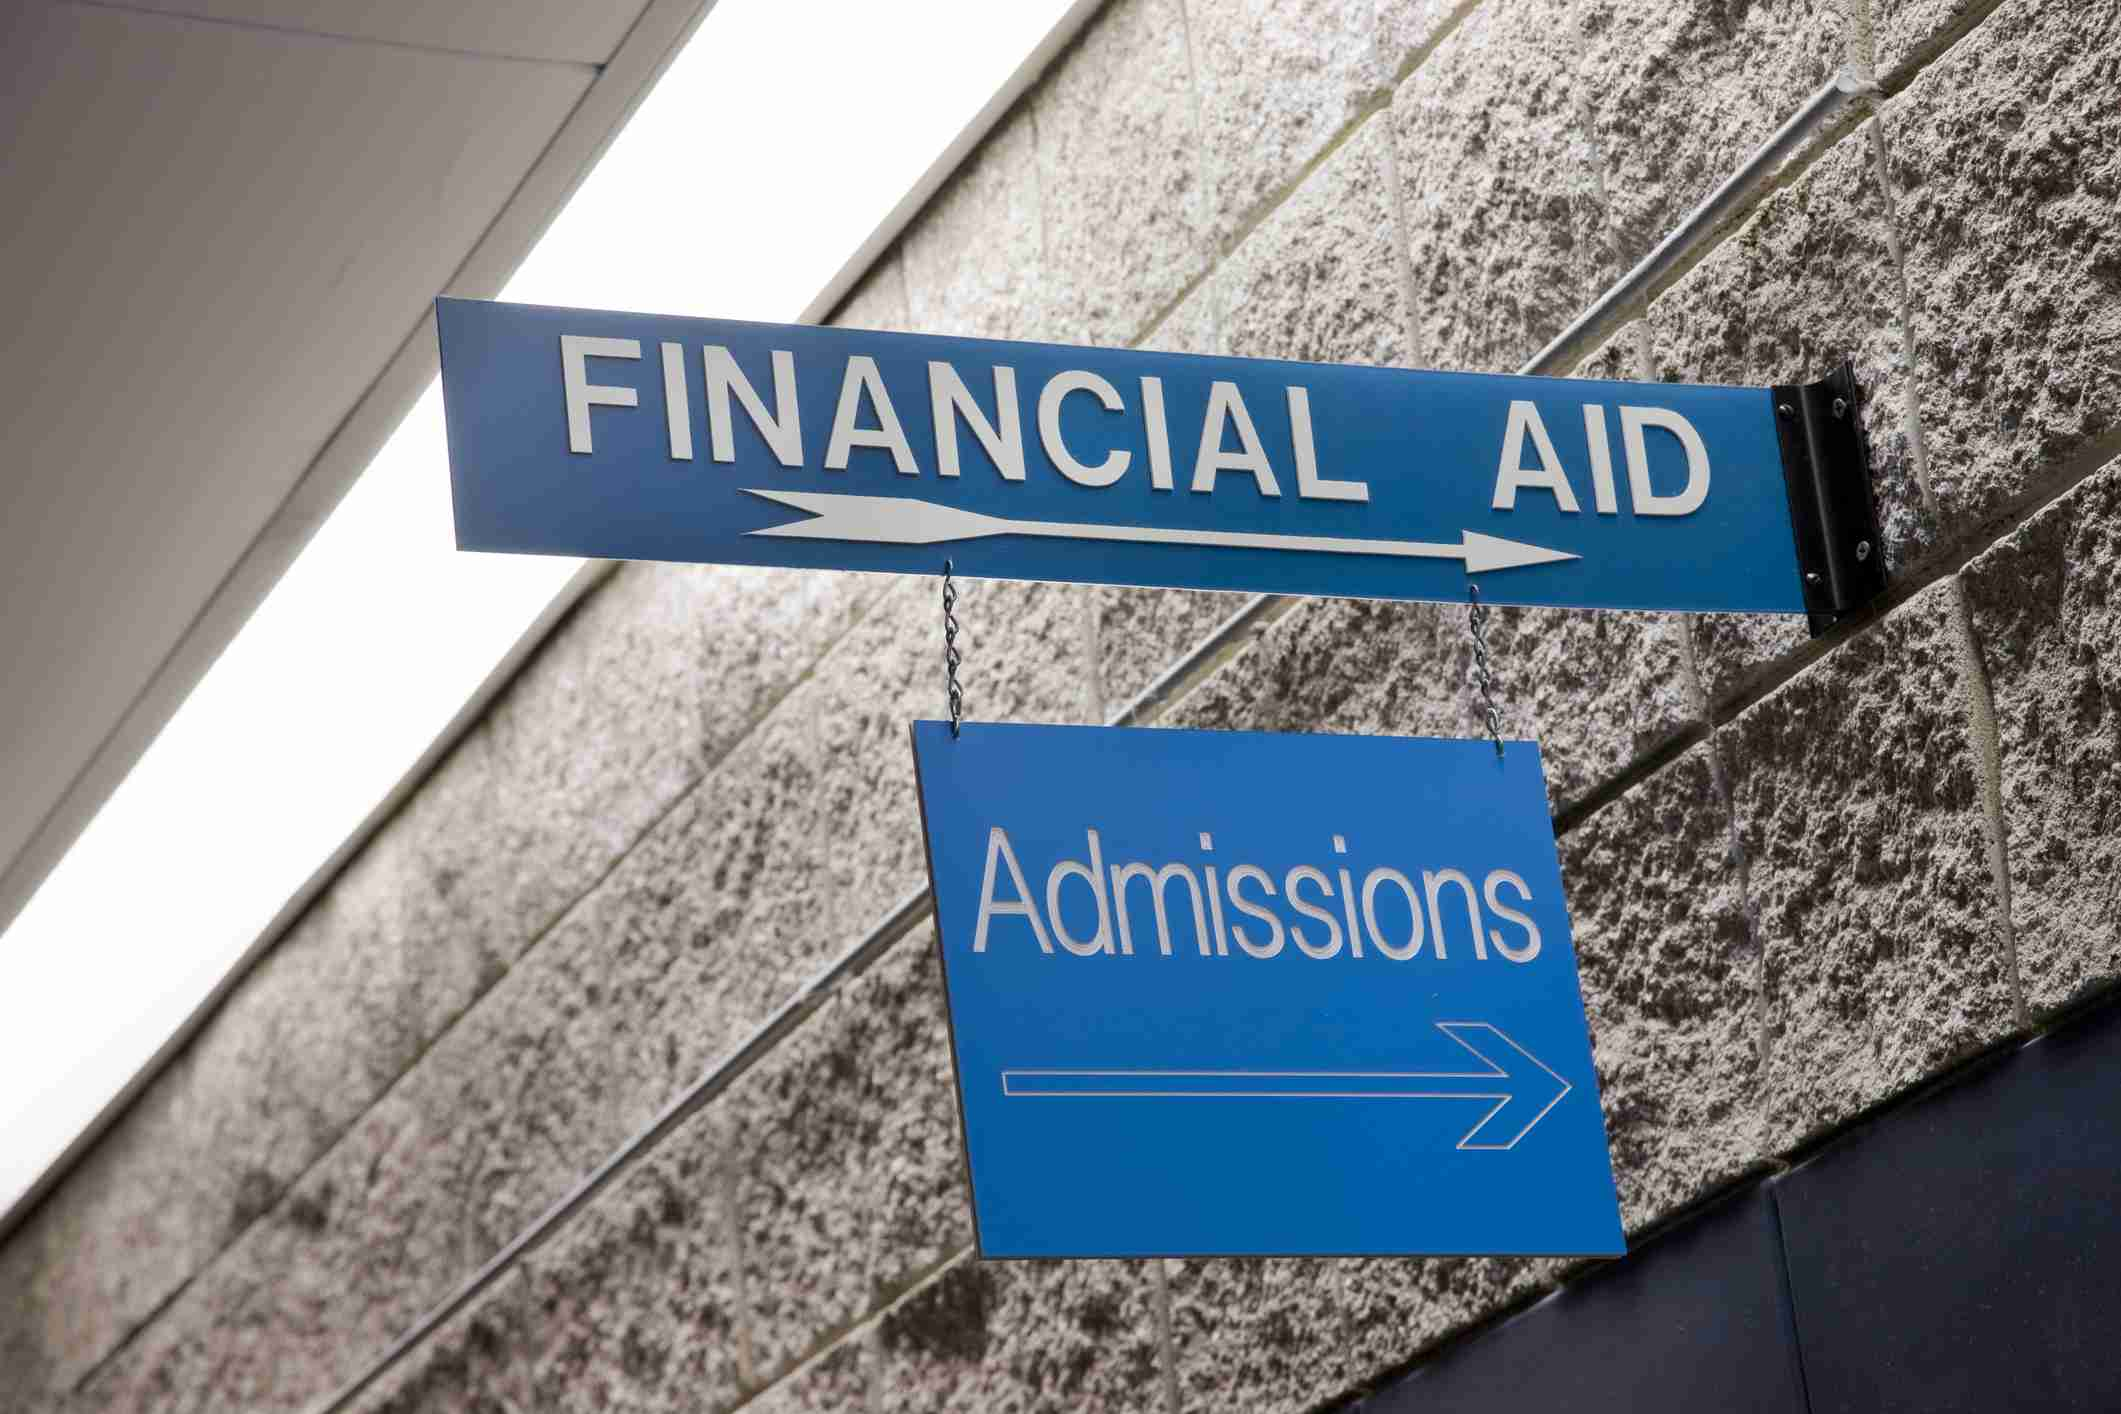 Directional financial aid and admissions signs hanging from a wall